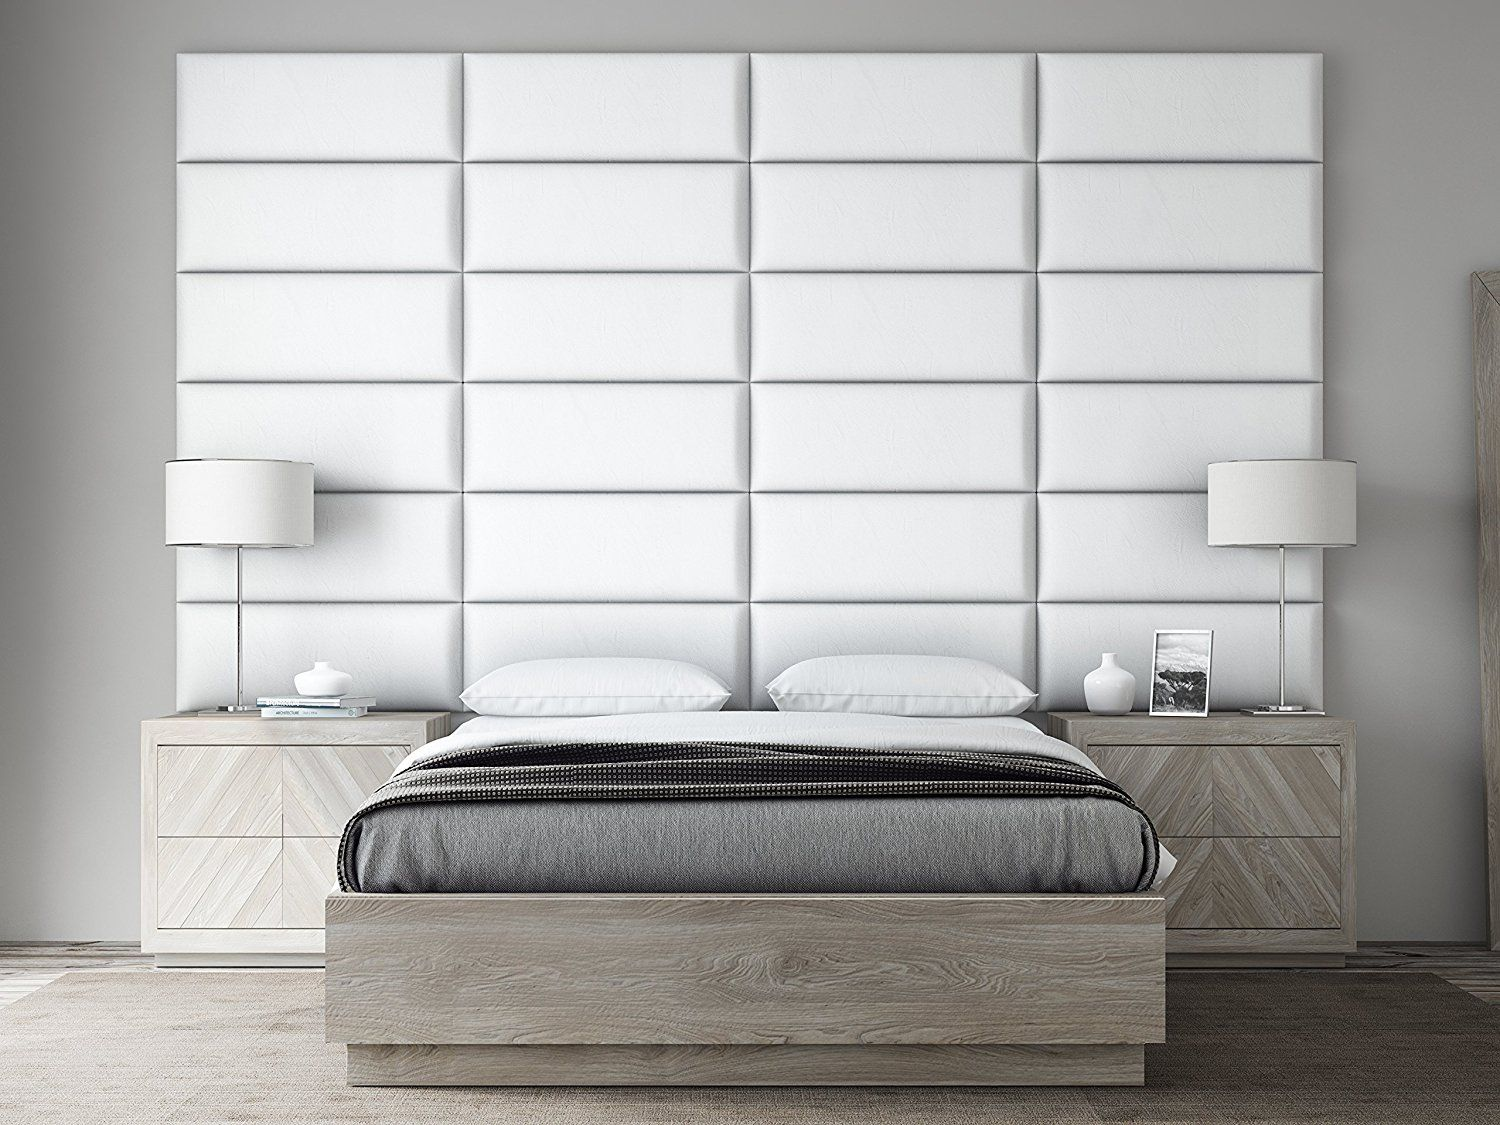 These White Upholstered Headboard Panels Can Be Used As A Headboard Accent Wall Or Focus Upholstered Headboard Queen Upholstered Headboard Upholstered Walls